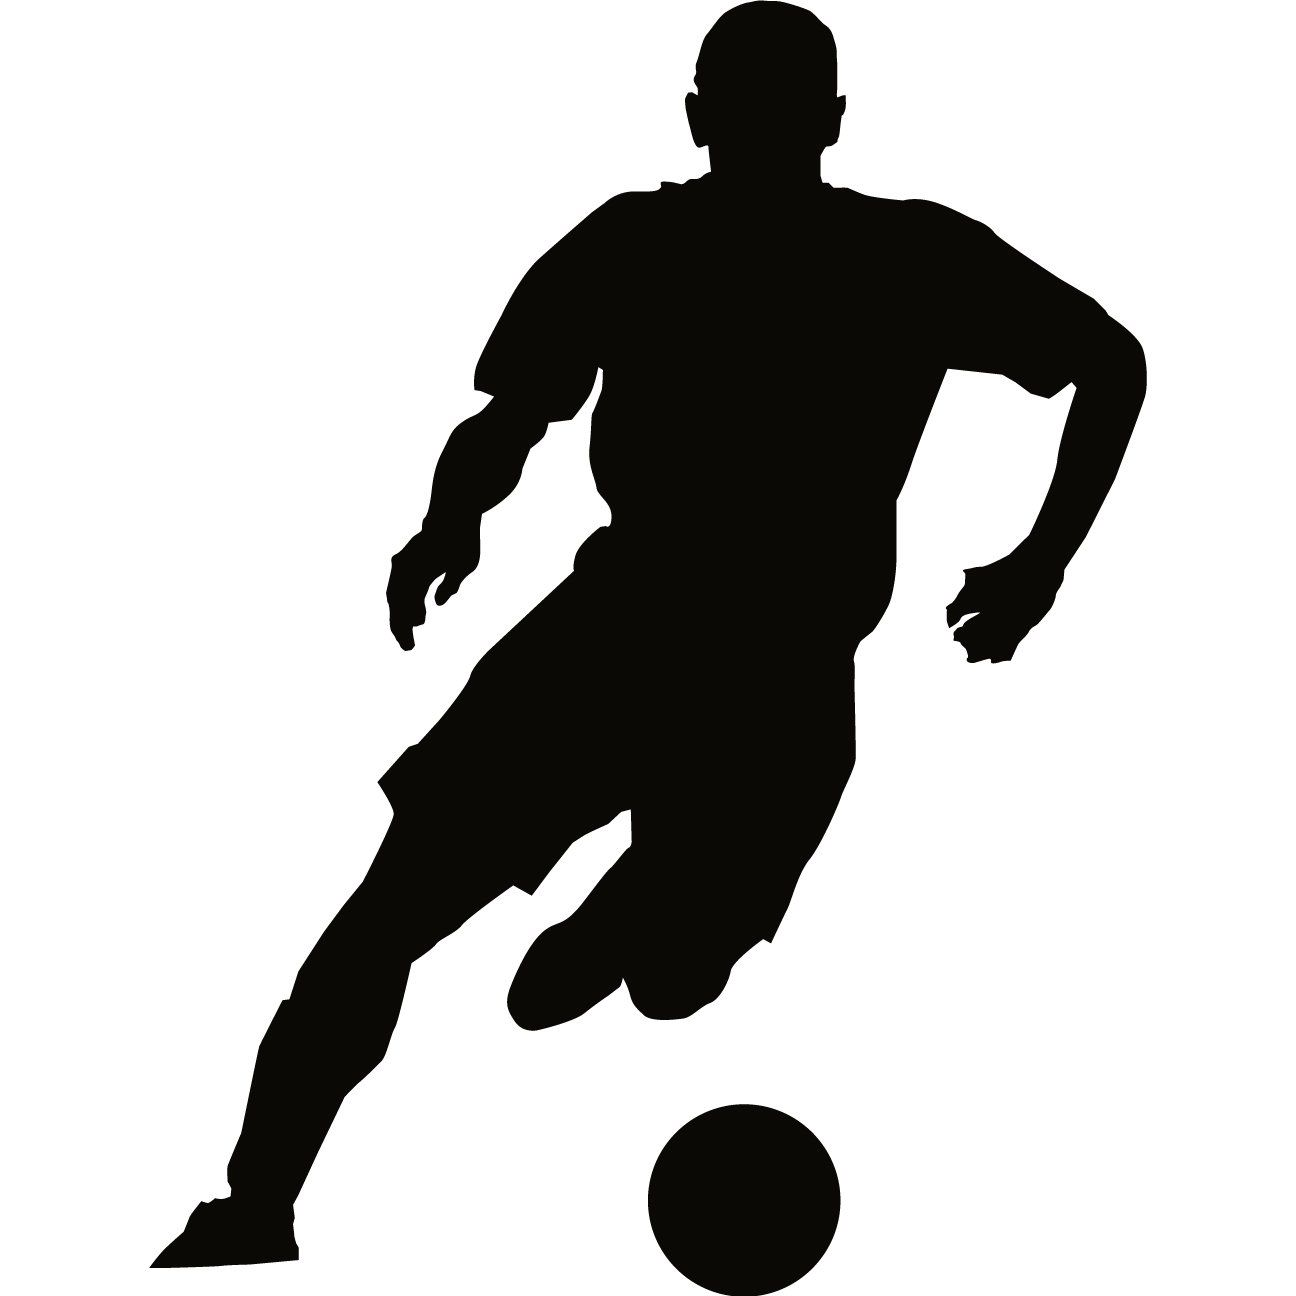 Room Decor Wall Stickers Soccer Wall Decal Sticker Sports Silhouette Decoration